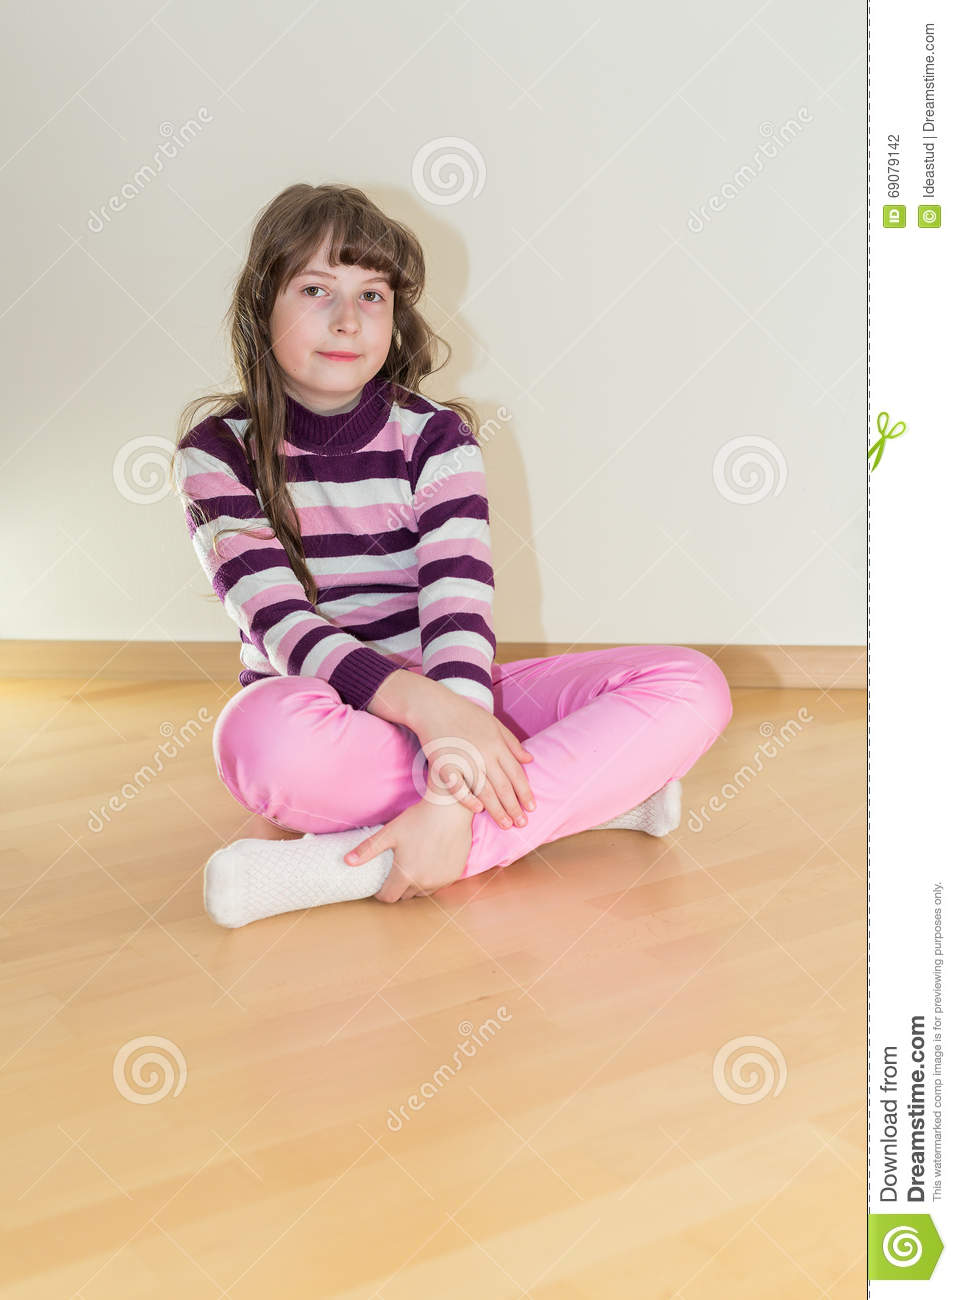 Very young little girl pictures images 649